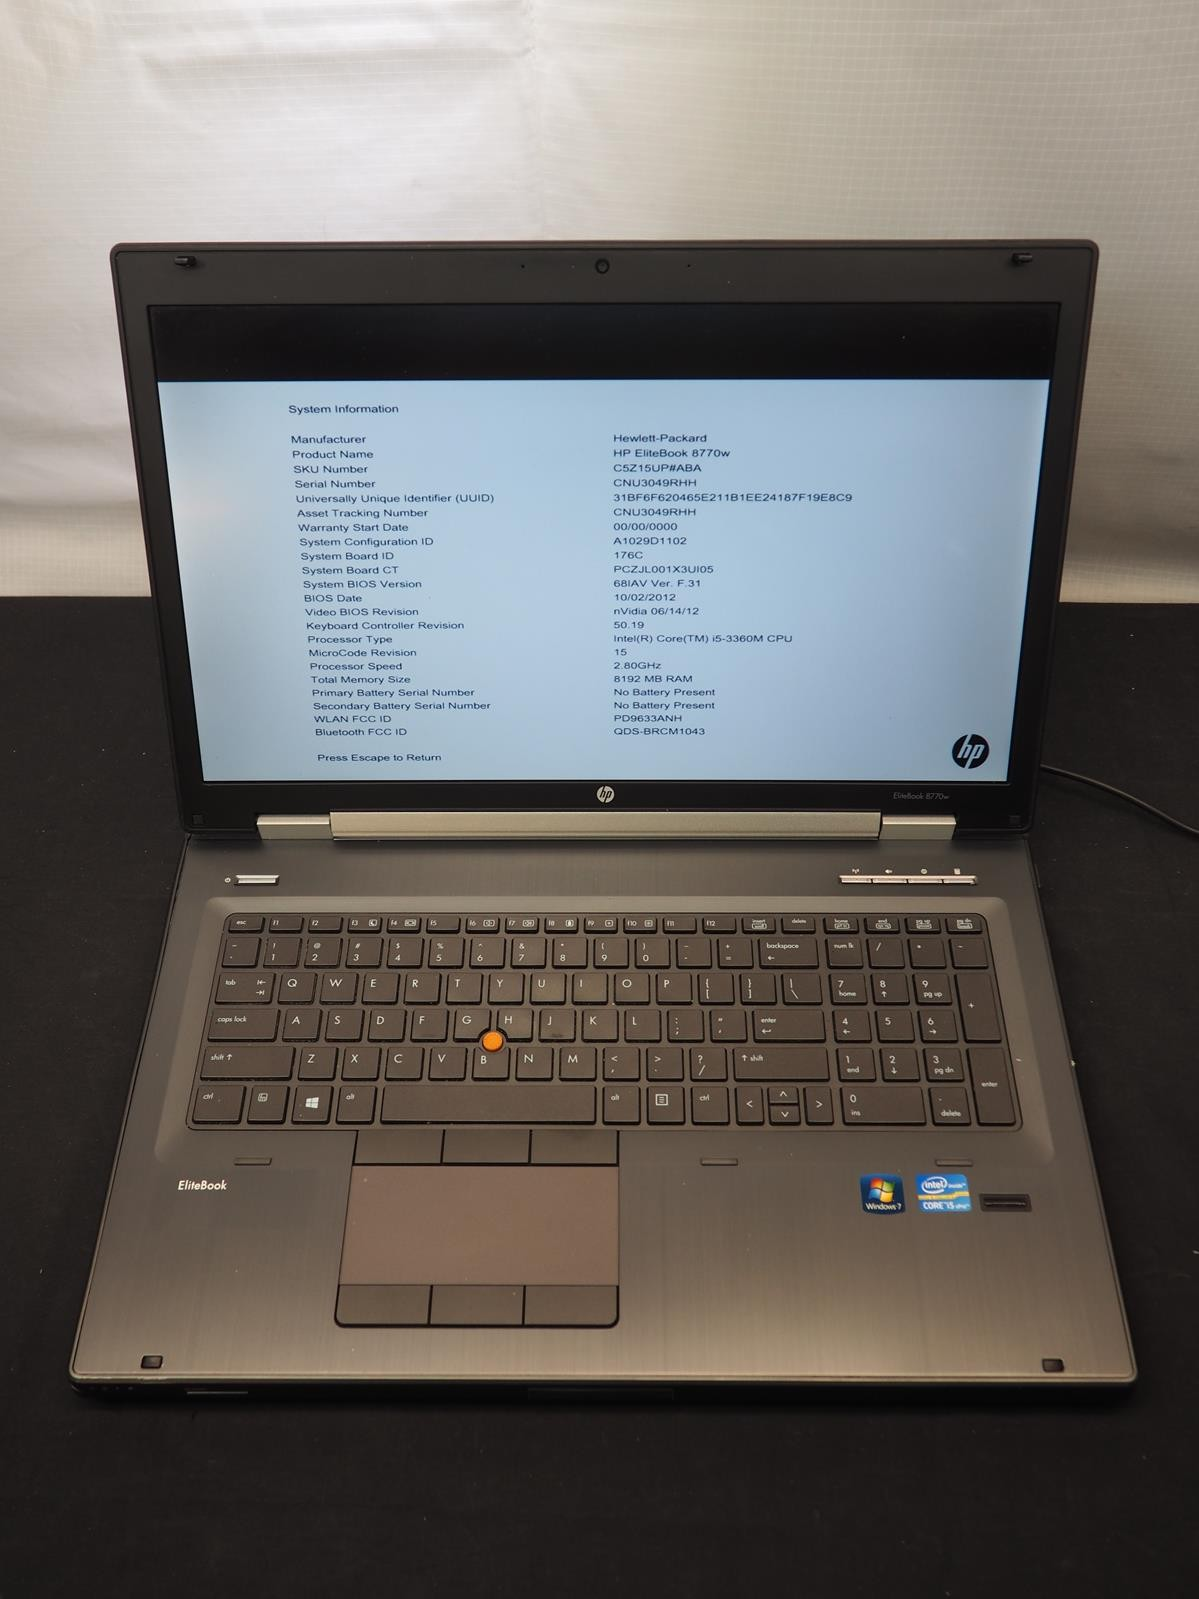 714-ELITEBOOK_8770W_12640_base